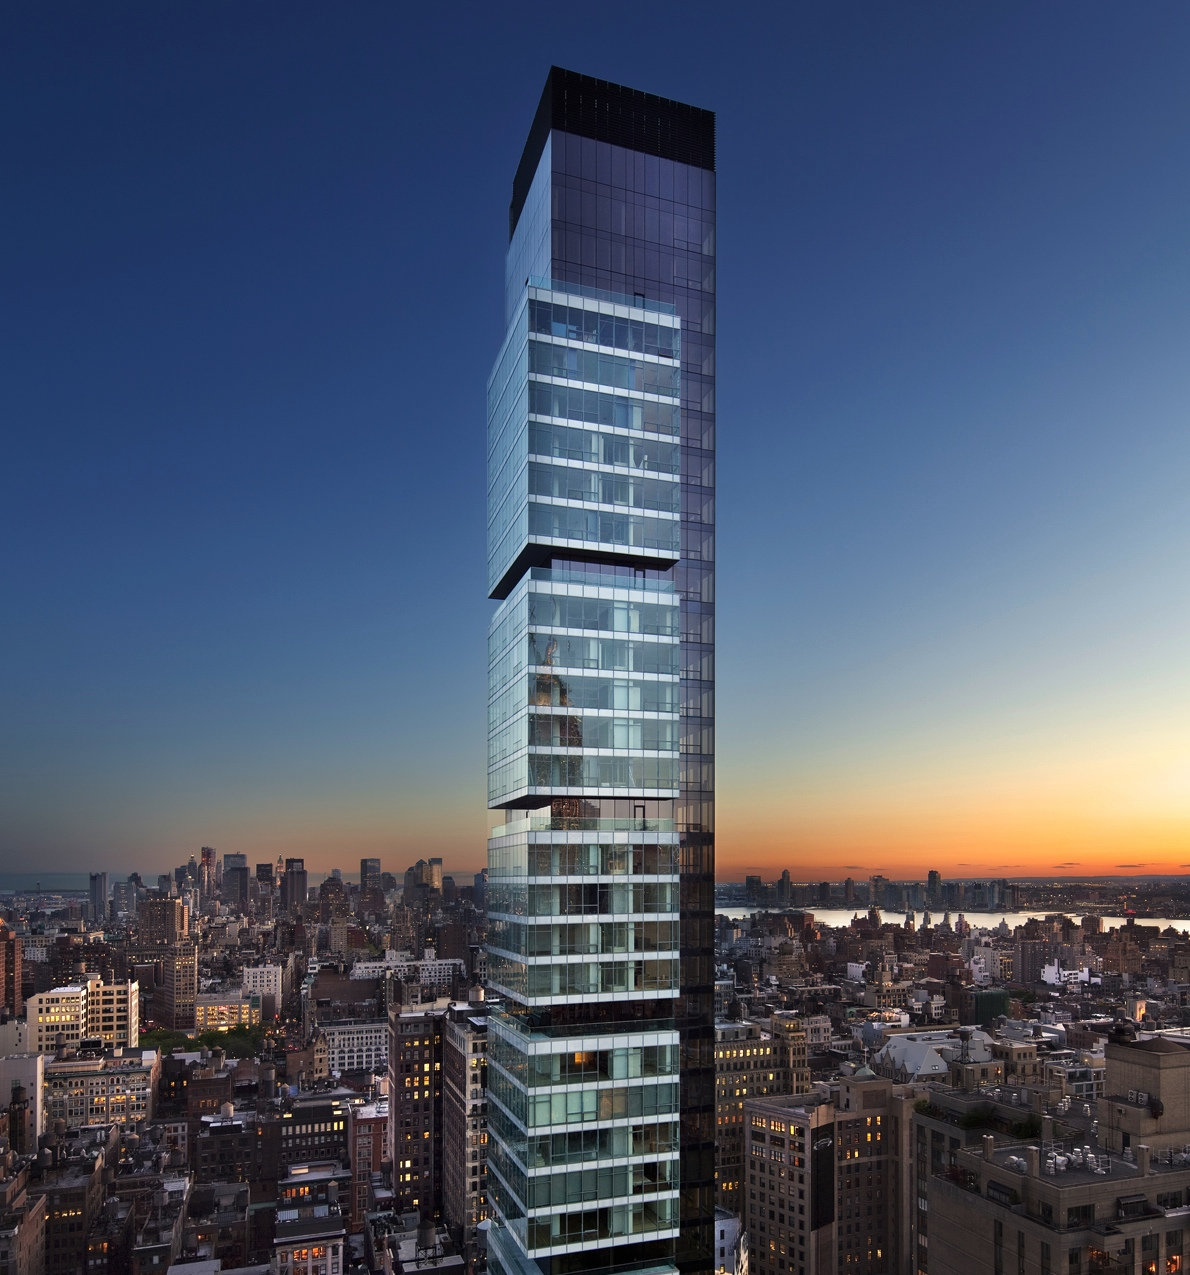 Nyc Apartment Building: Gisele Bundchen And Tom Brady Apartment At One Madison